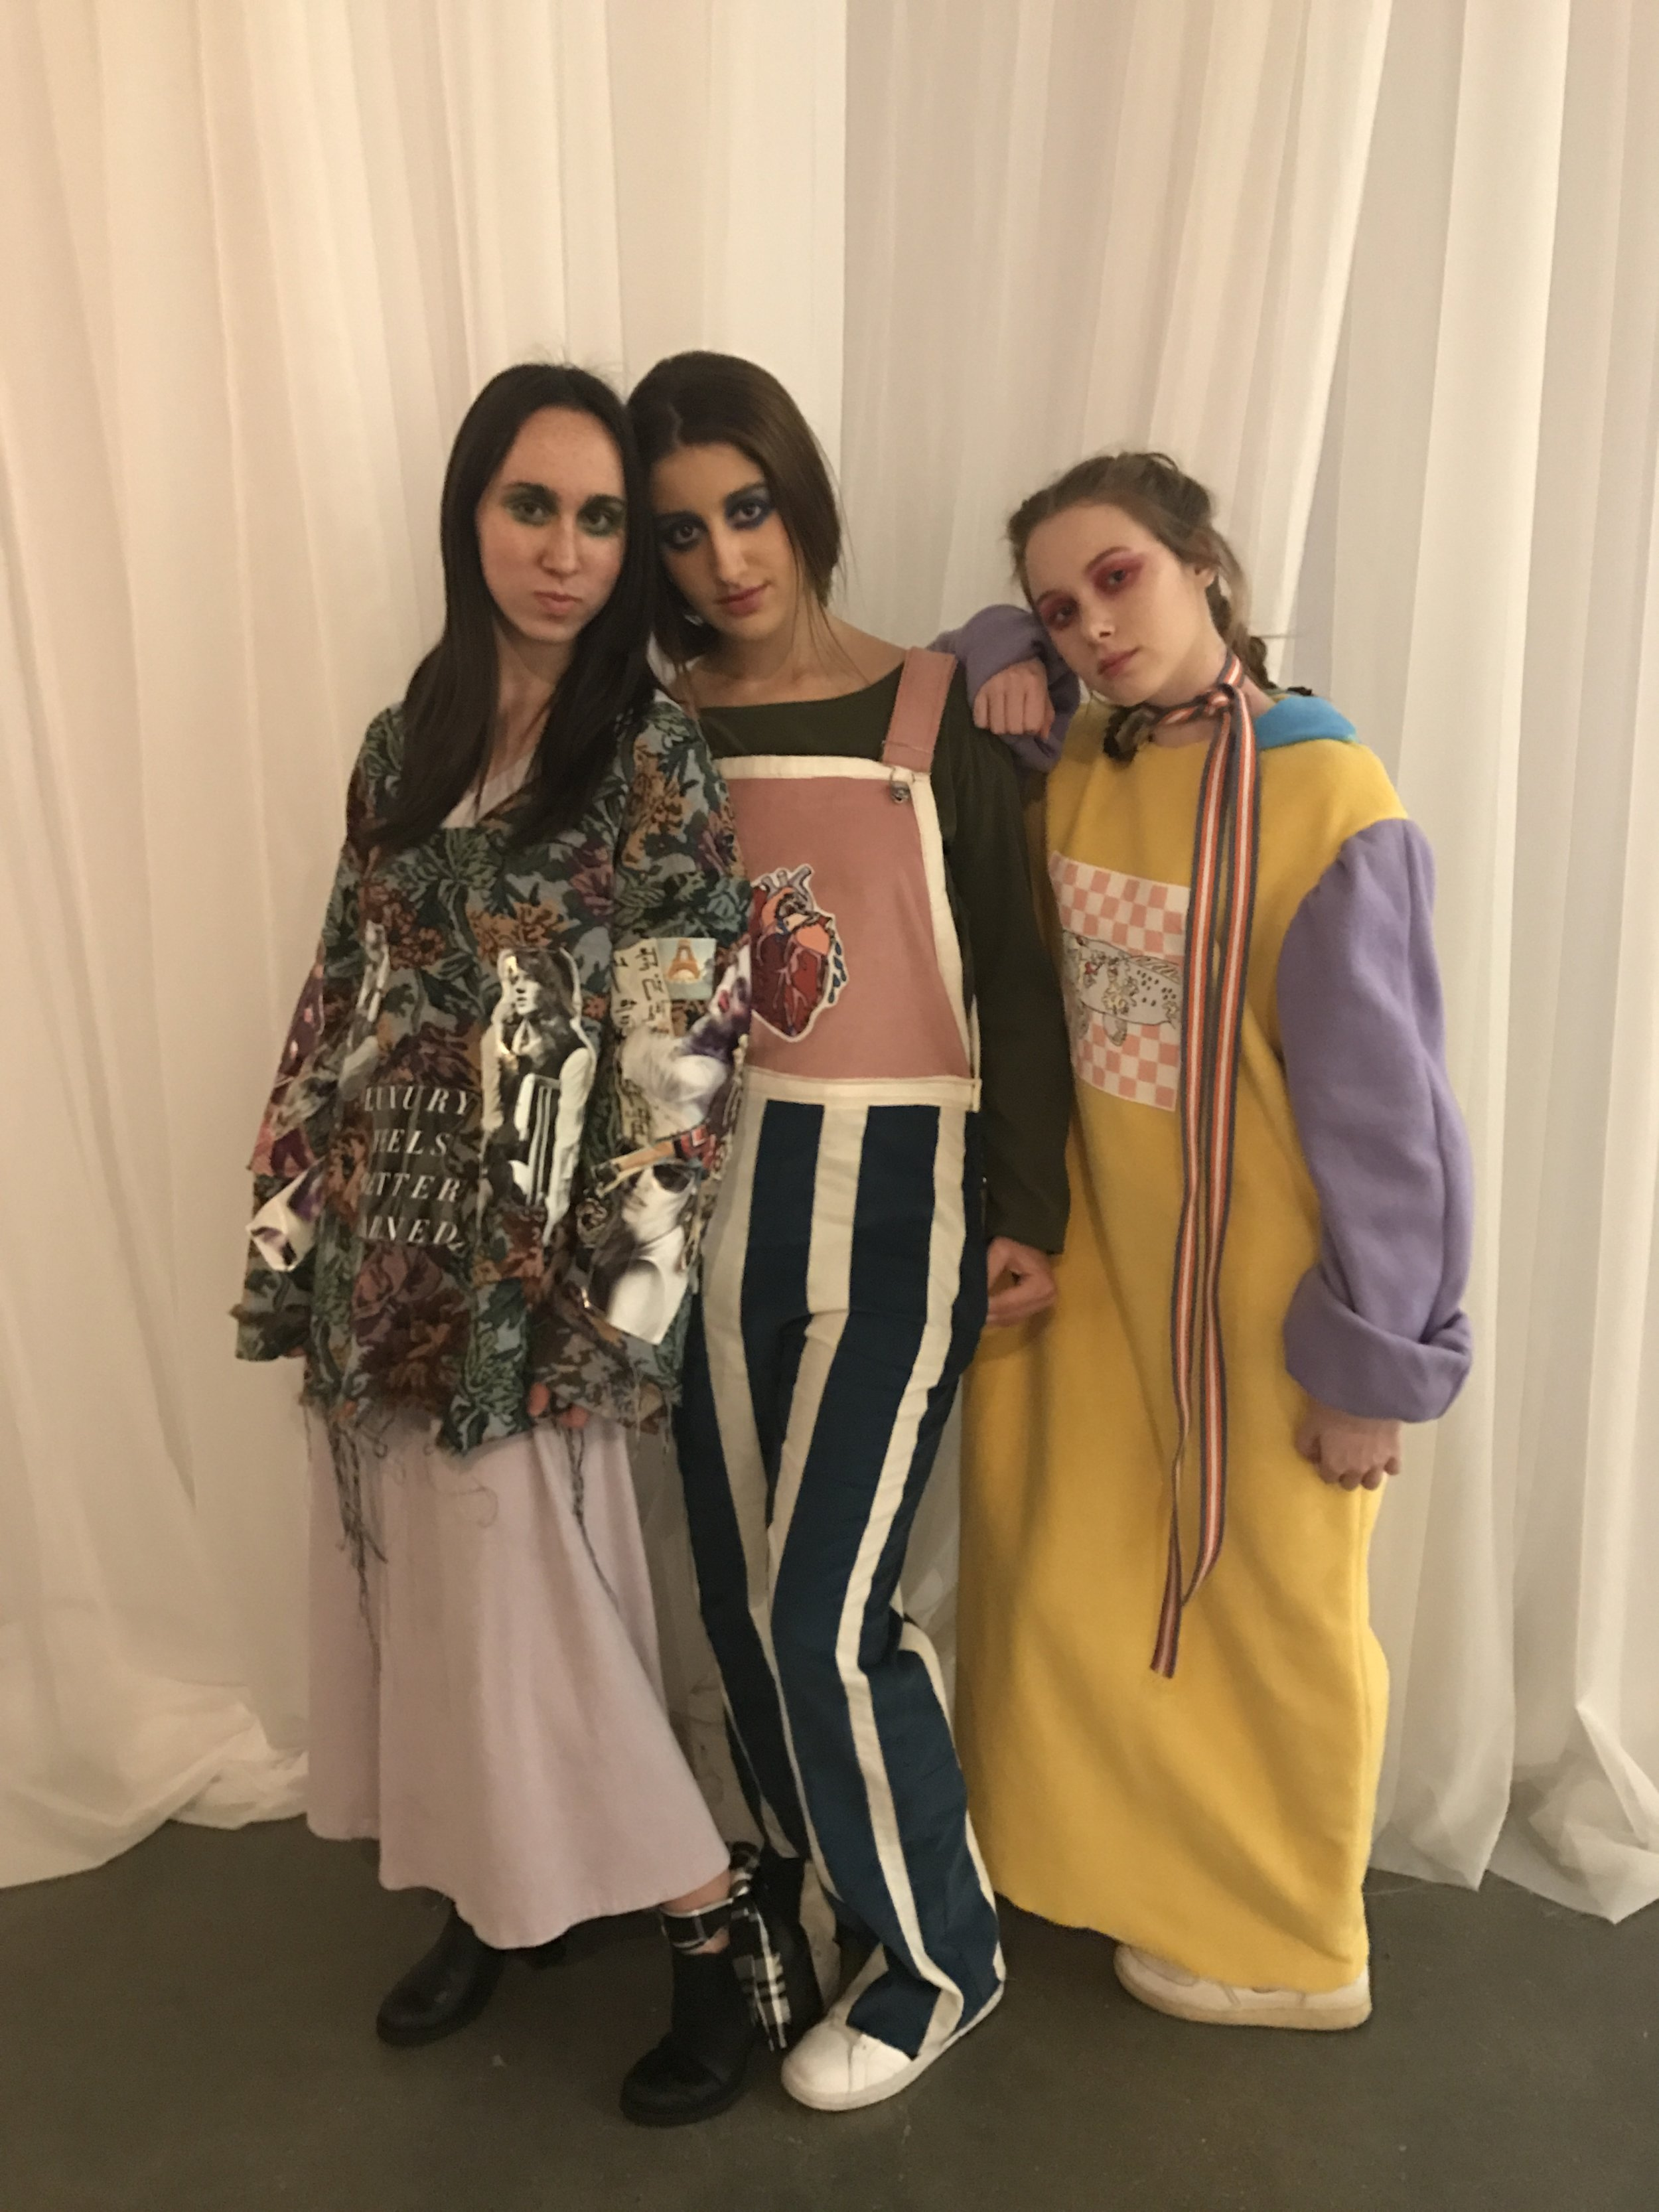 Three looks from the OFW student night in February 2017.